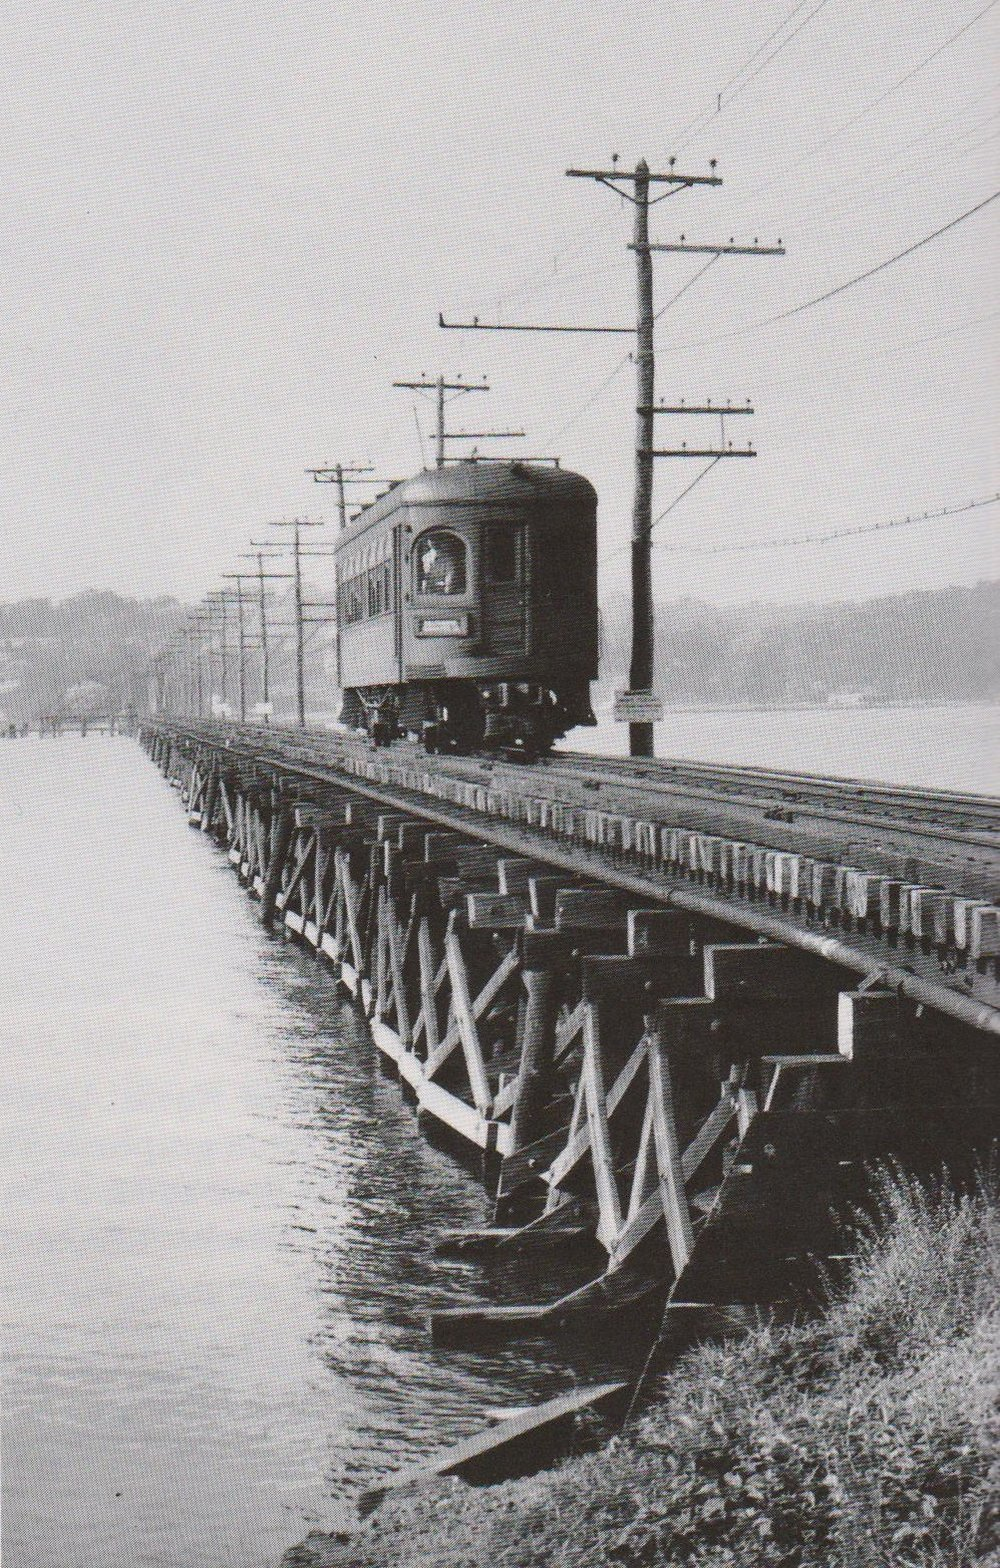 Baltimore & Annapolis Railroad Car traveling over the Severn River Bridge. Annapolis, Maryland Date: Unknown. Source:  Baltimore Light Rail, Then & Now .